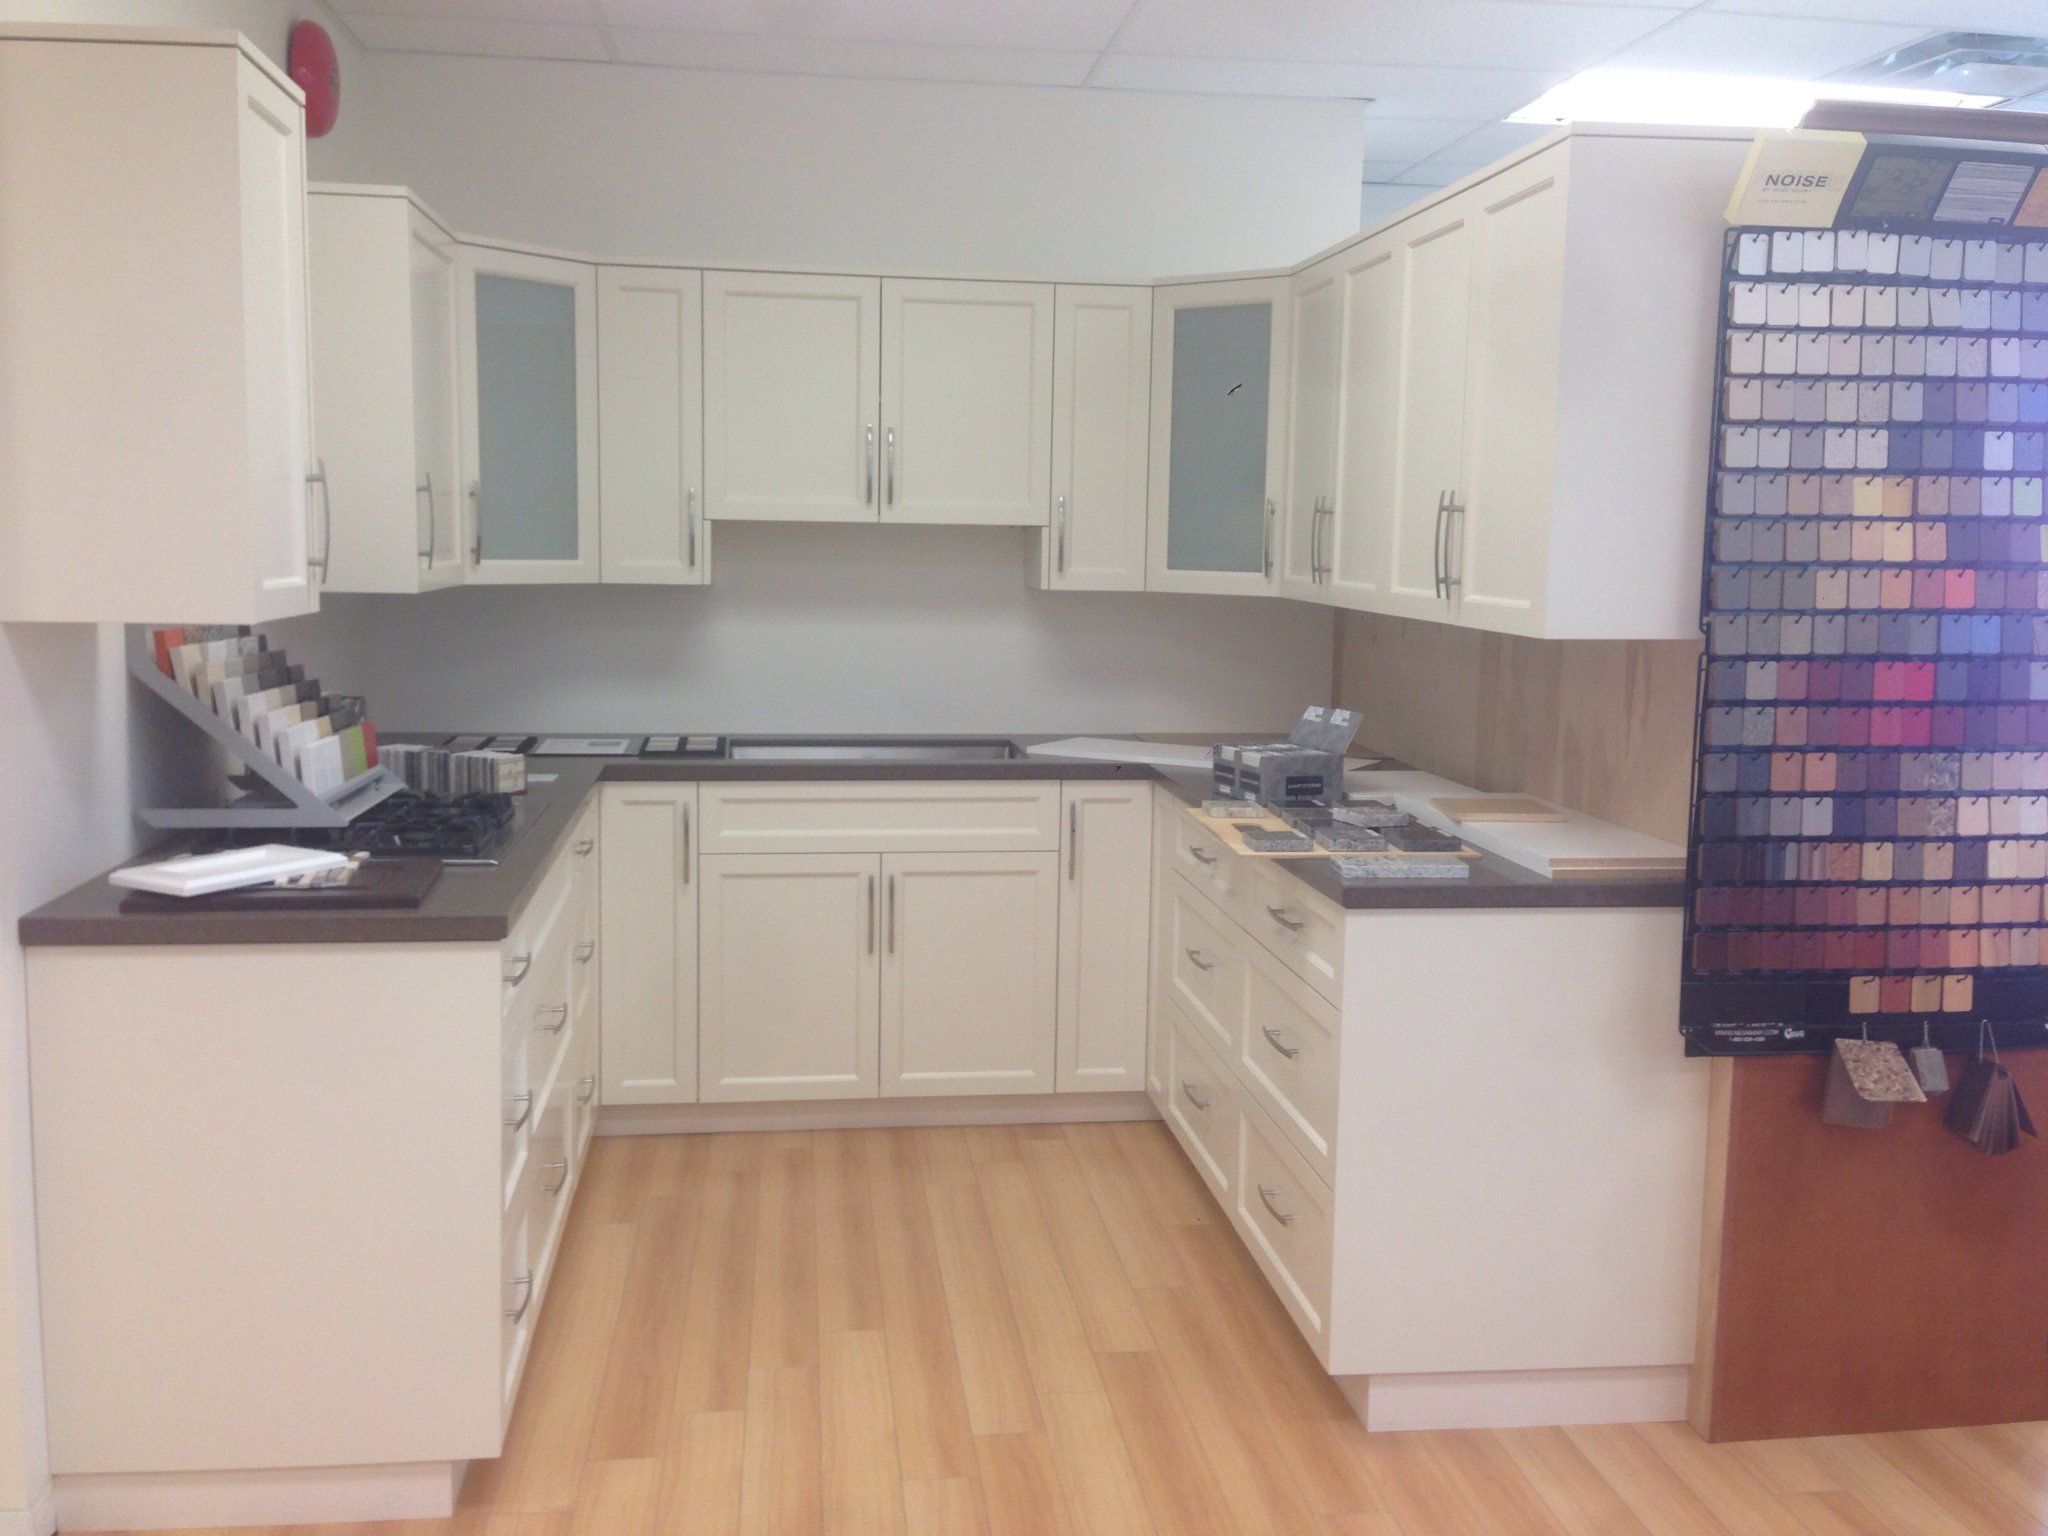 Superior Cove Tops & Cabinets in Burnaby